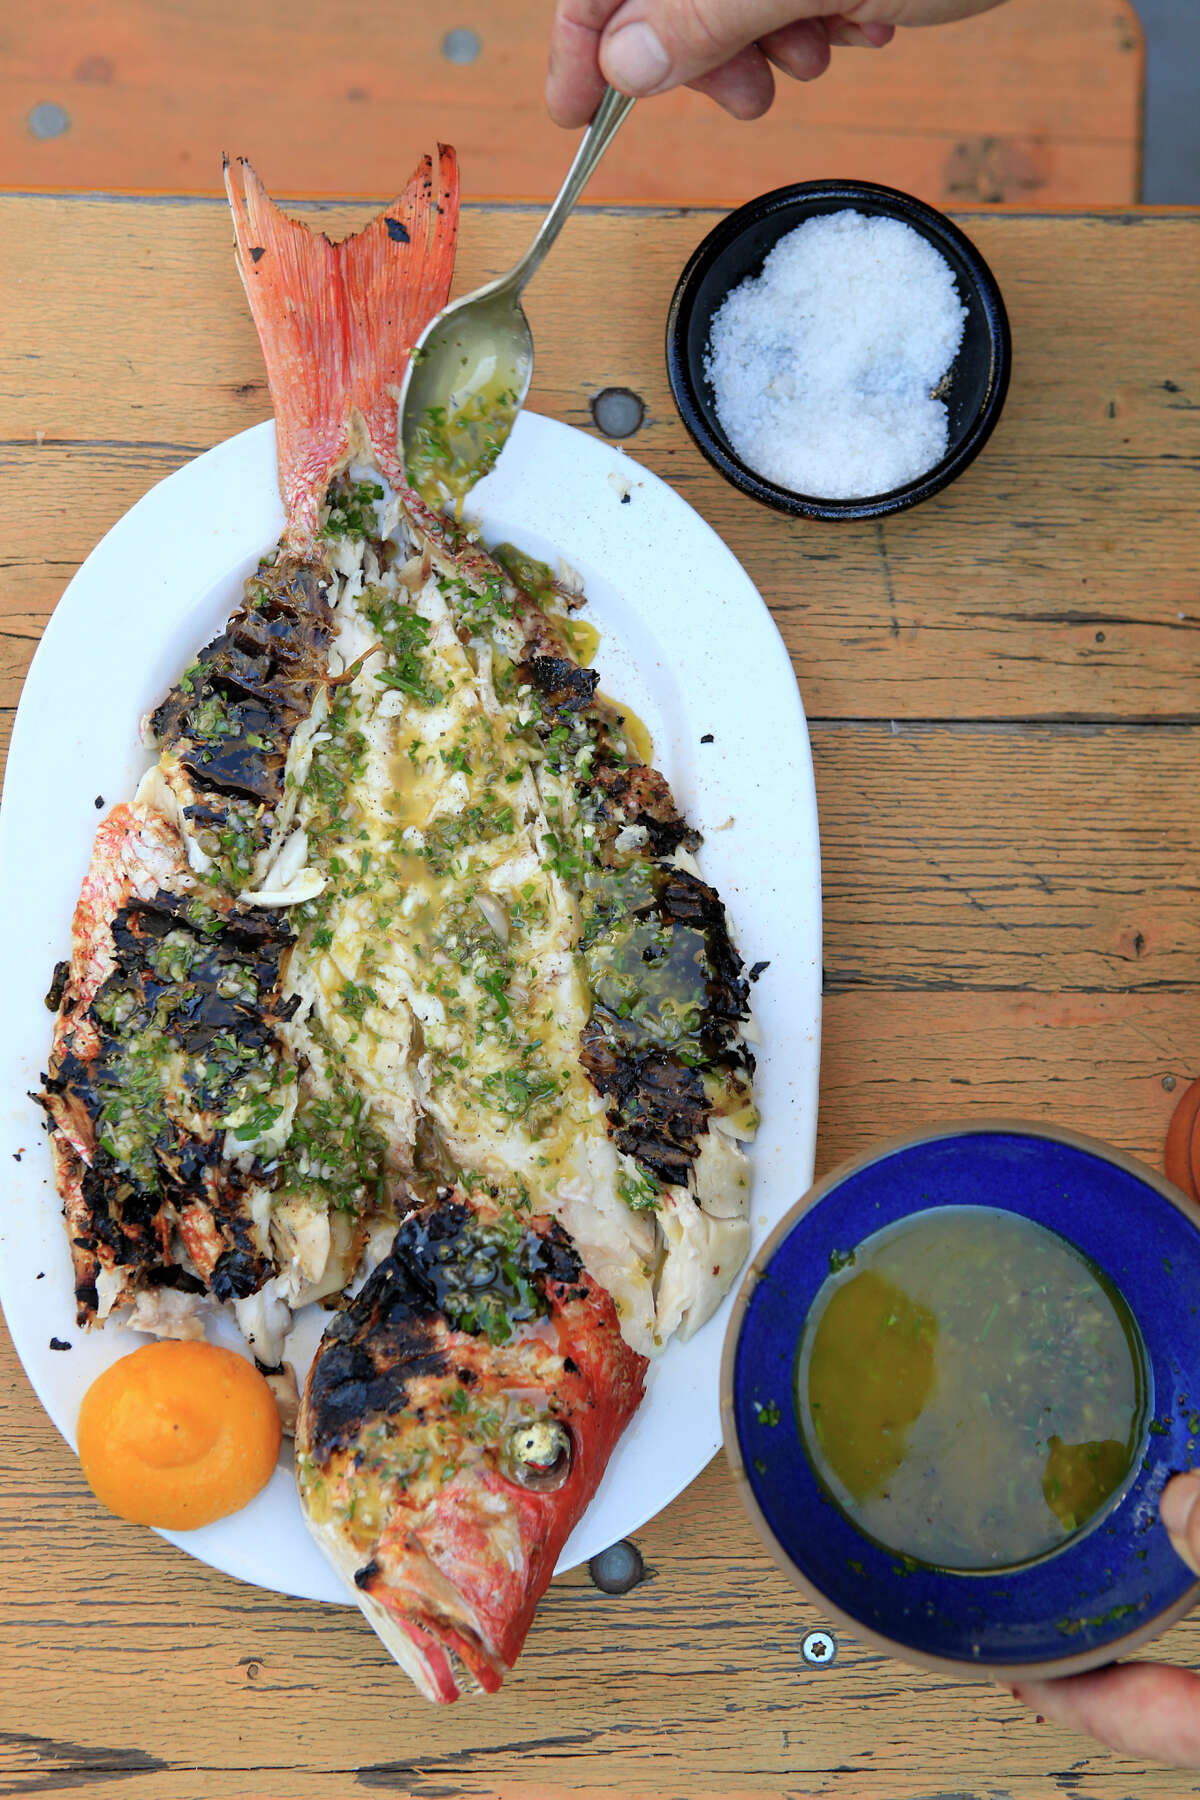 Chef Erik Cosselmon dresses the fish with a lemon vinaigrette, at his home in San Francisco, CA, Wednesday, August 12, 2014.